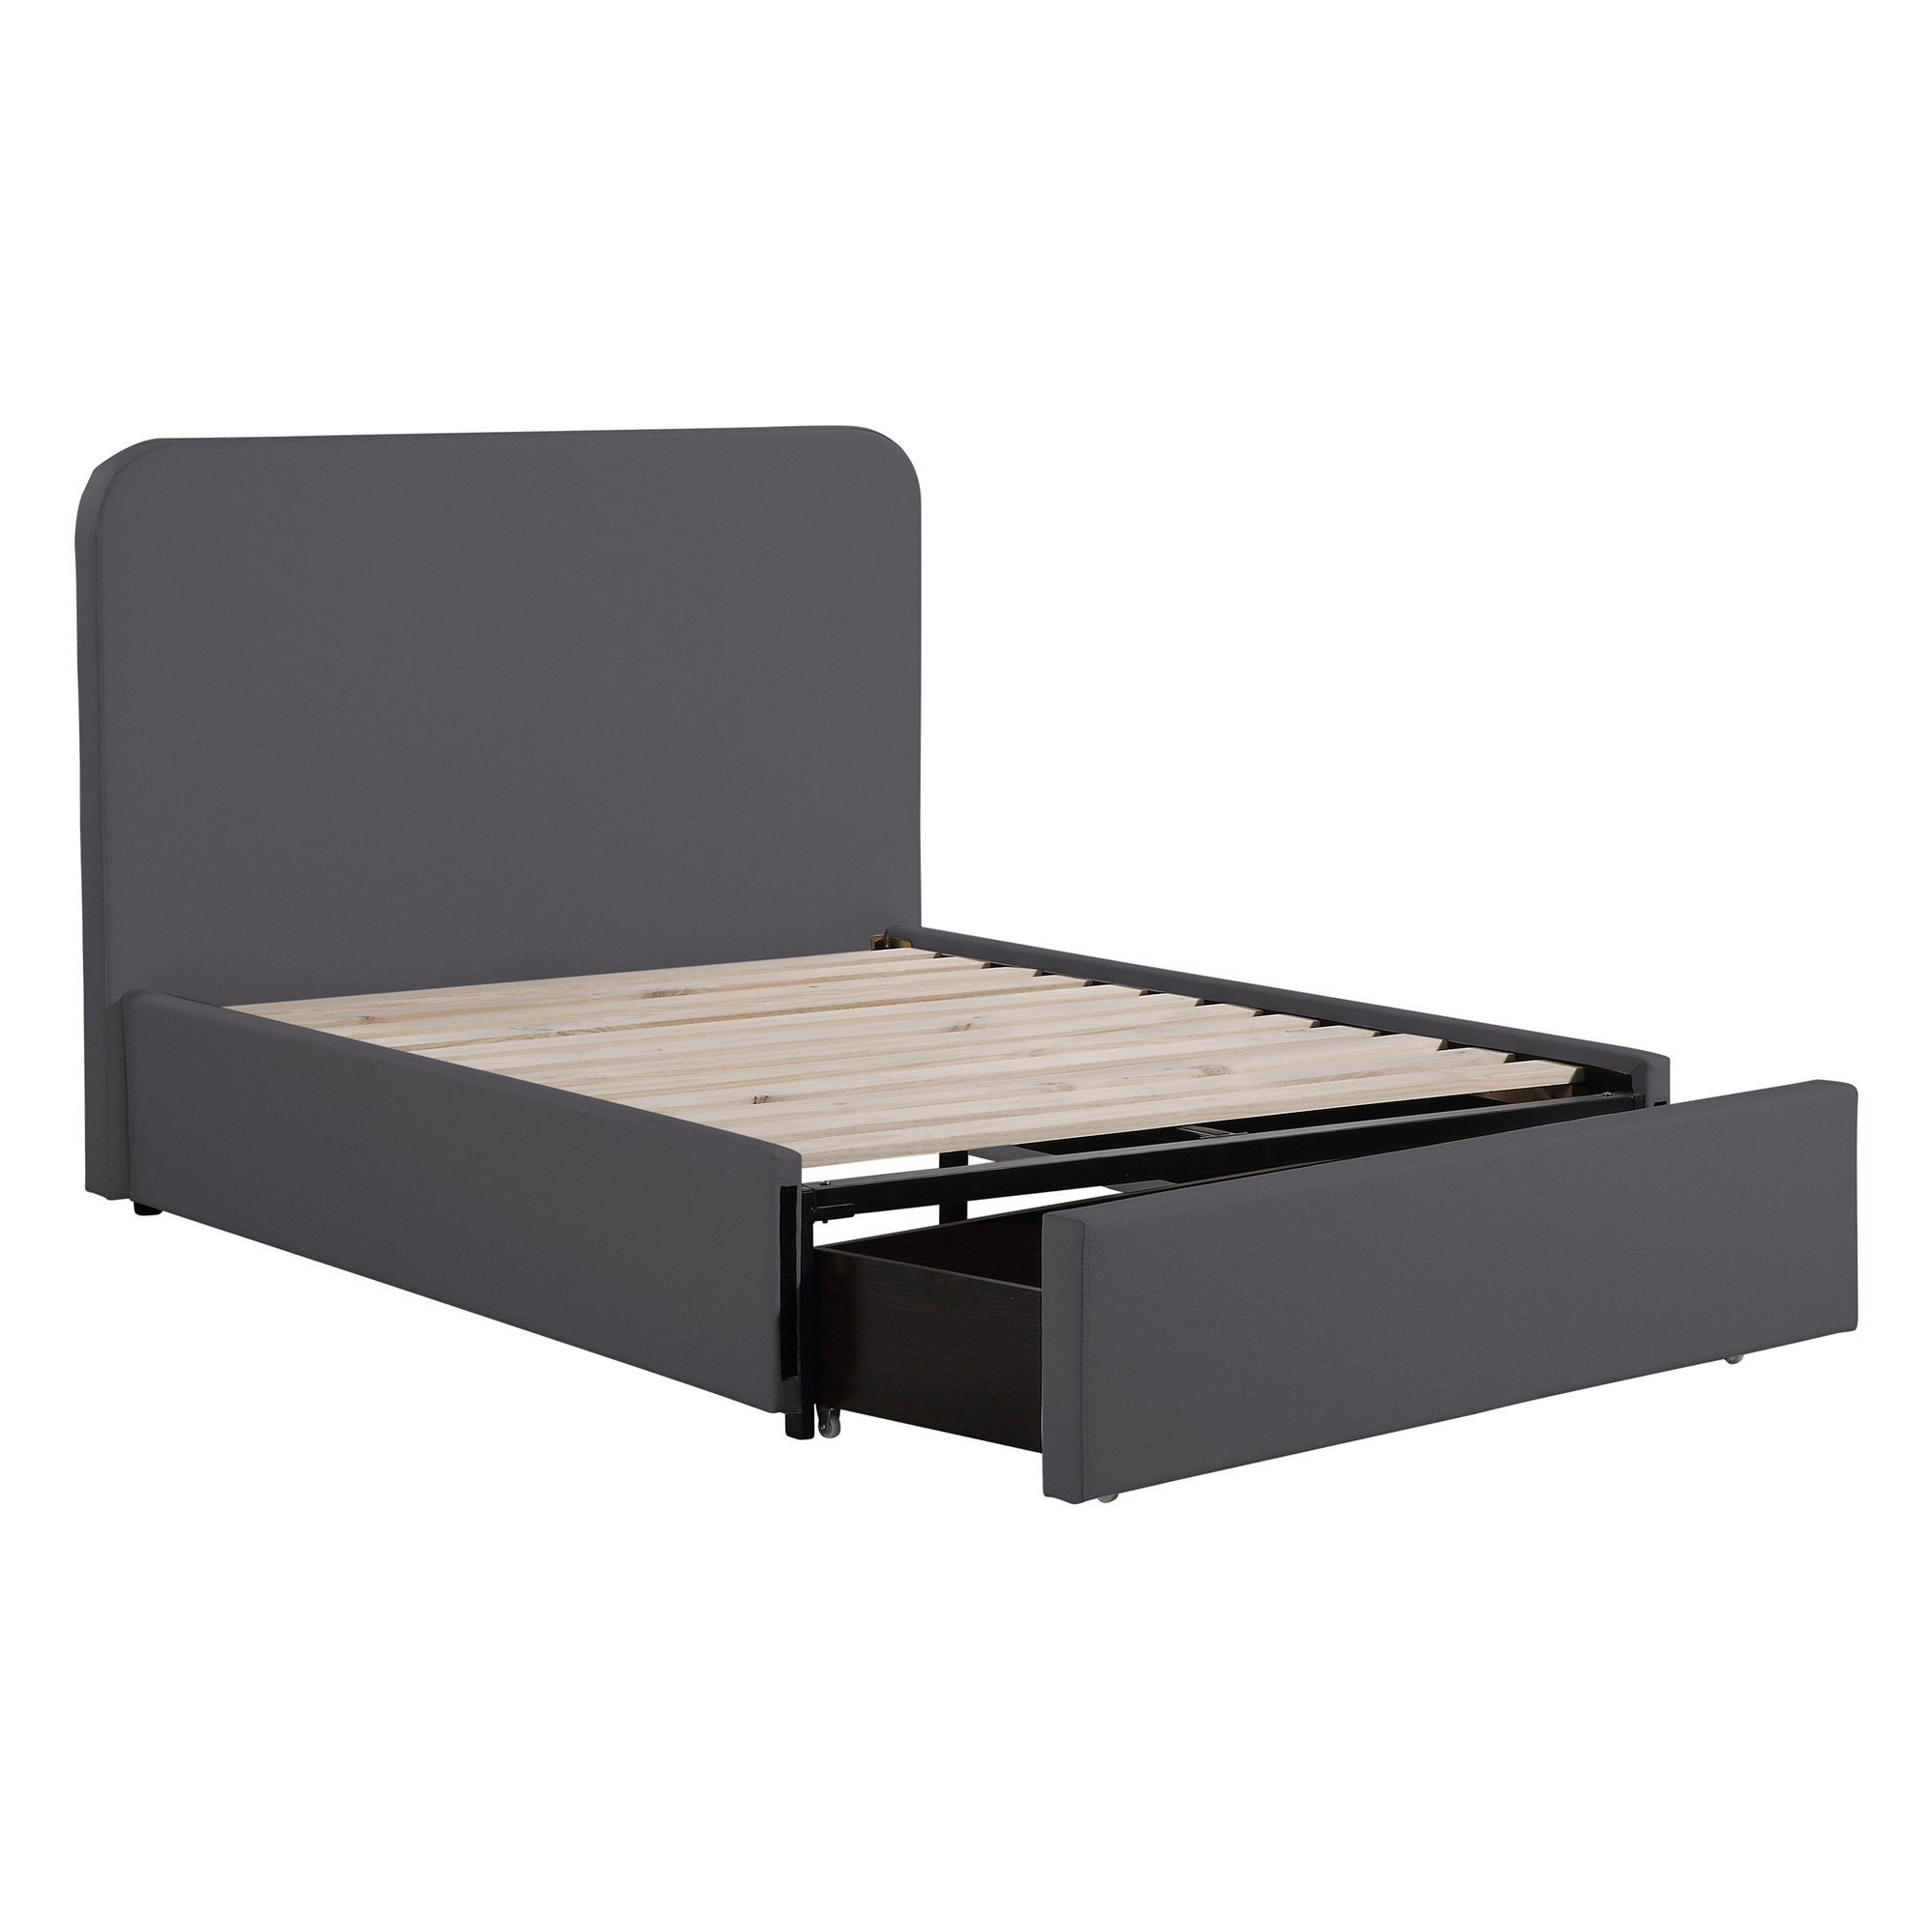 Duke Fabric Bed with End Drawer, Single